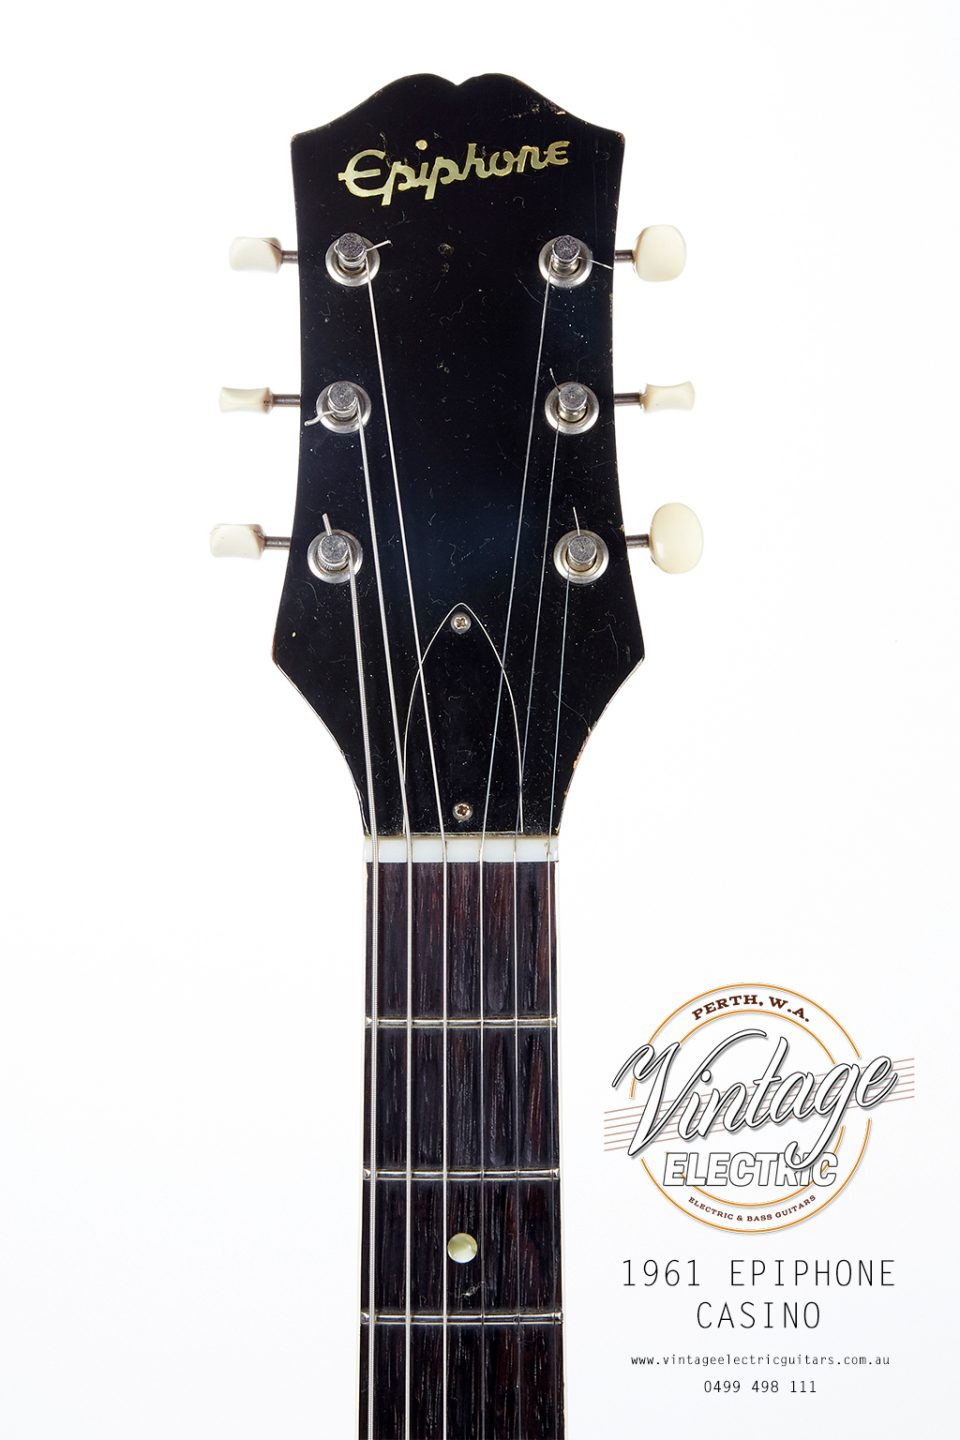 1961 Epiphone Casino Headstock